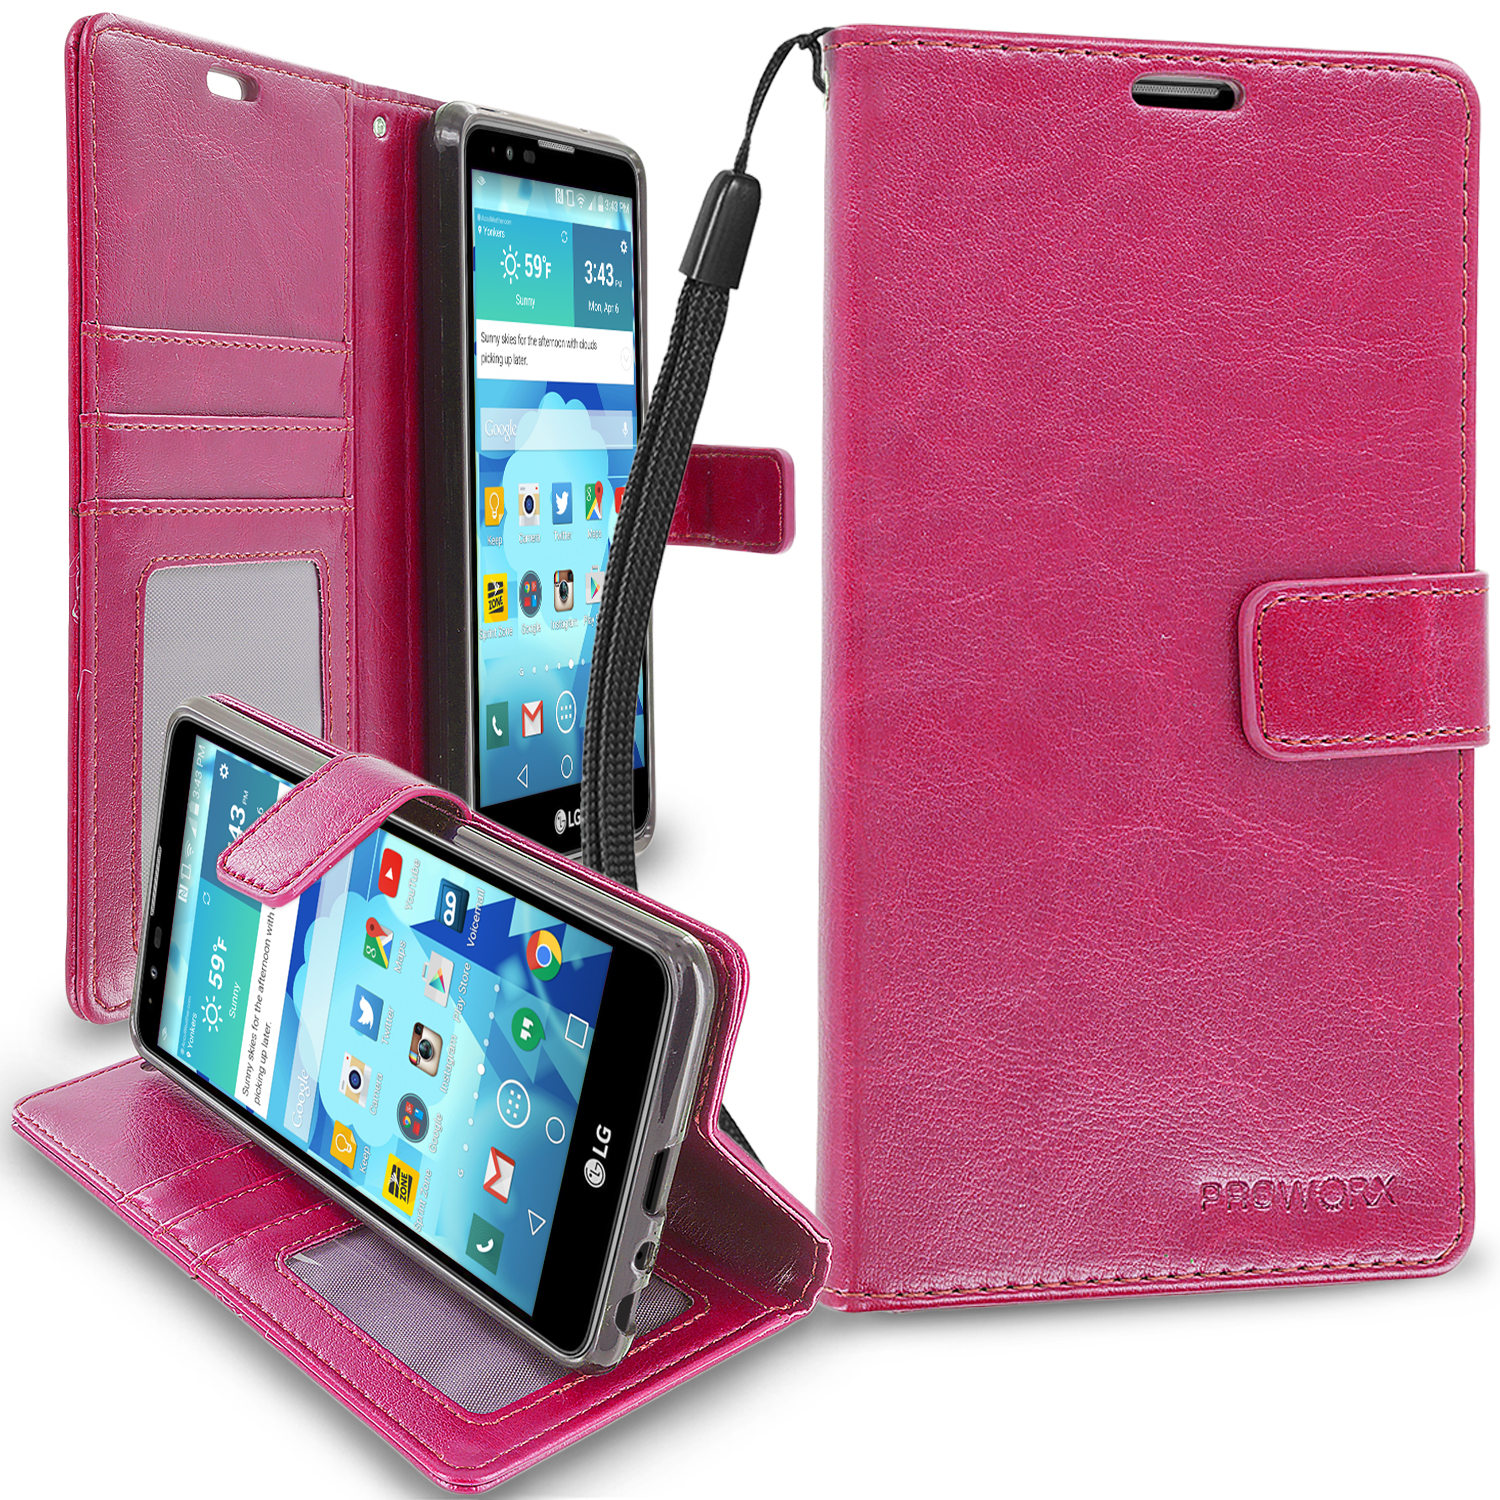 LG G Stylo 2 LS775 / Stylus 2 K520 / Stylo 2 V VS835 Hot Pink ProWorx Wallet Case Luxury PU Leather Case Cover With Card Slots & Stand